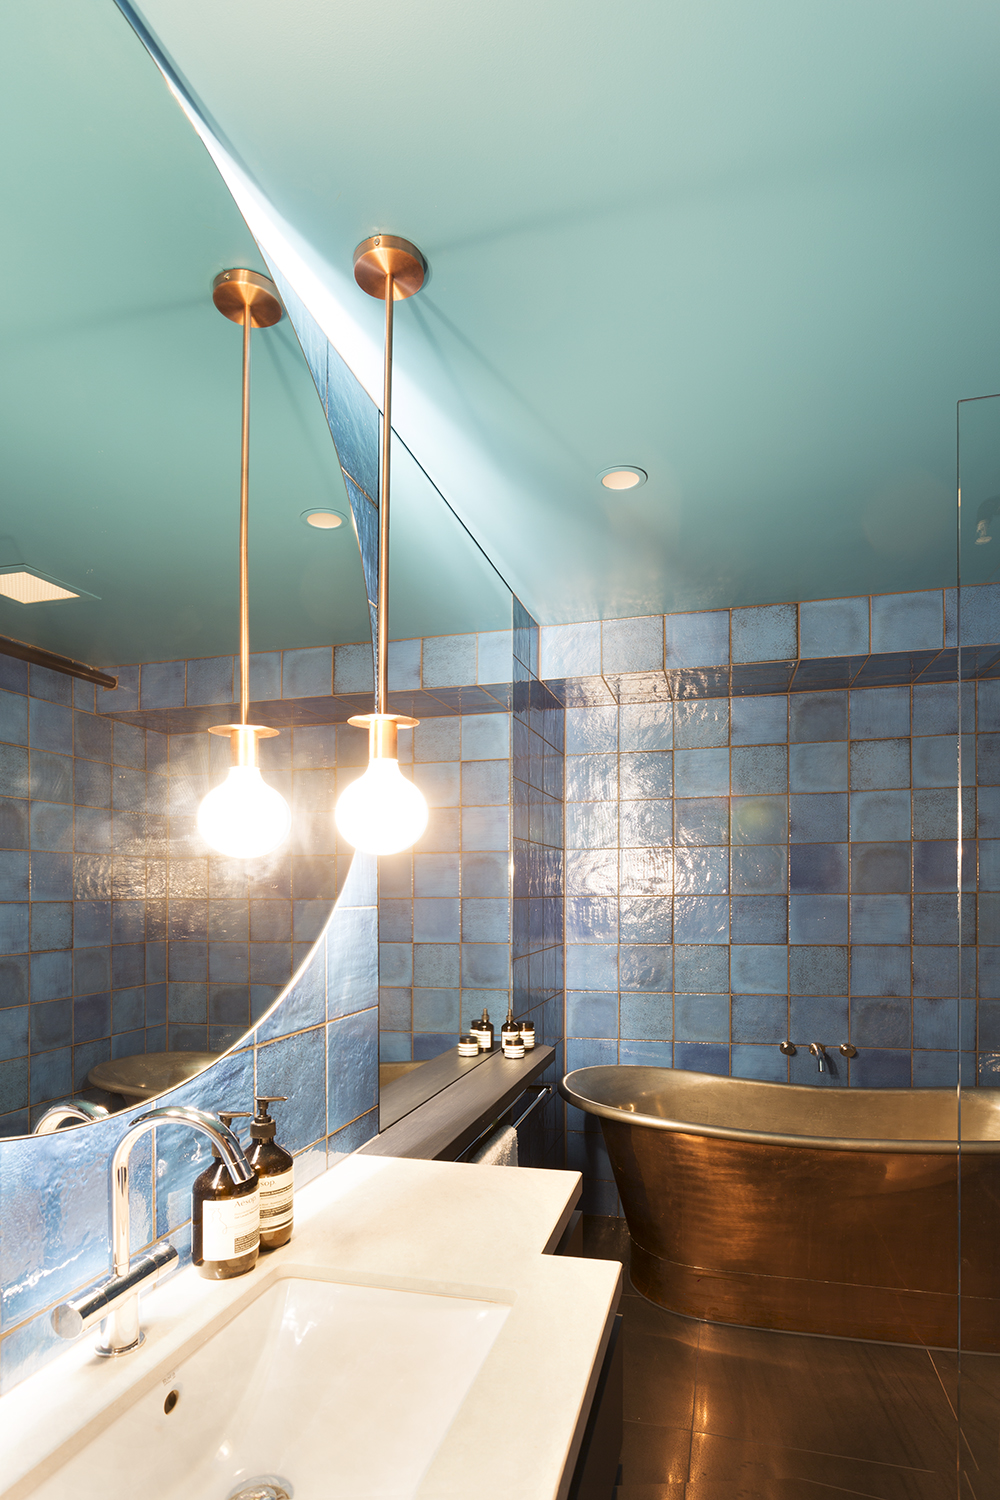 Collingwood apartment bathroom design by Melbourne interior designer Meredith Lee